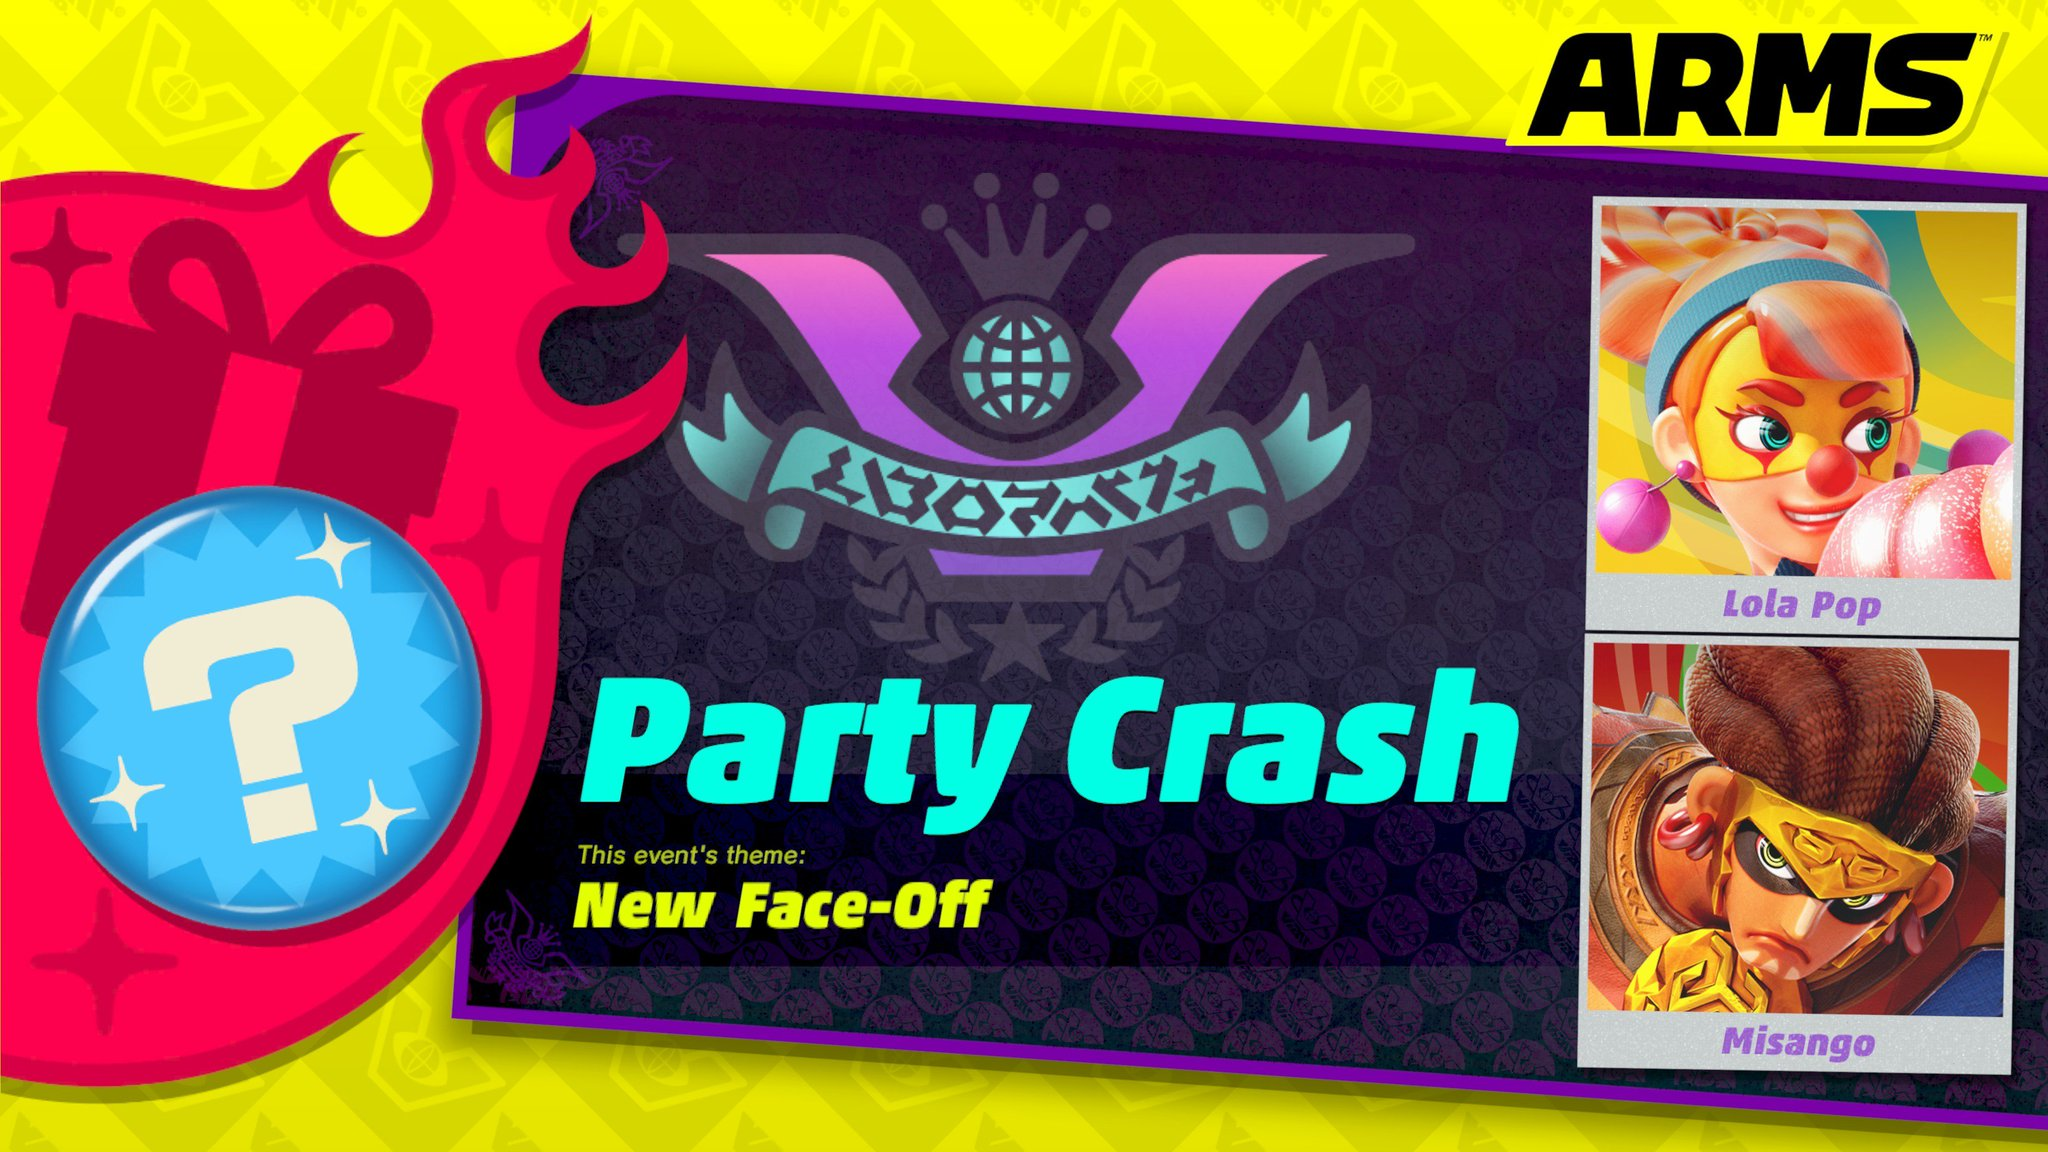 The #ARMS Party Crash between Lola Pop and Misango is going on now! Which fighter will you choose? https://t.co/nHORpf2PlS